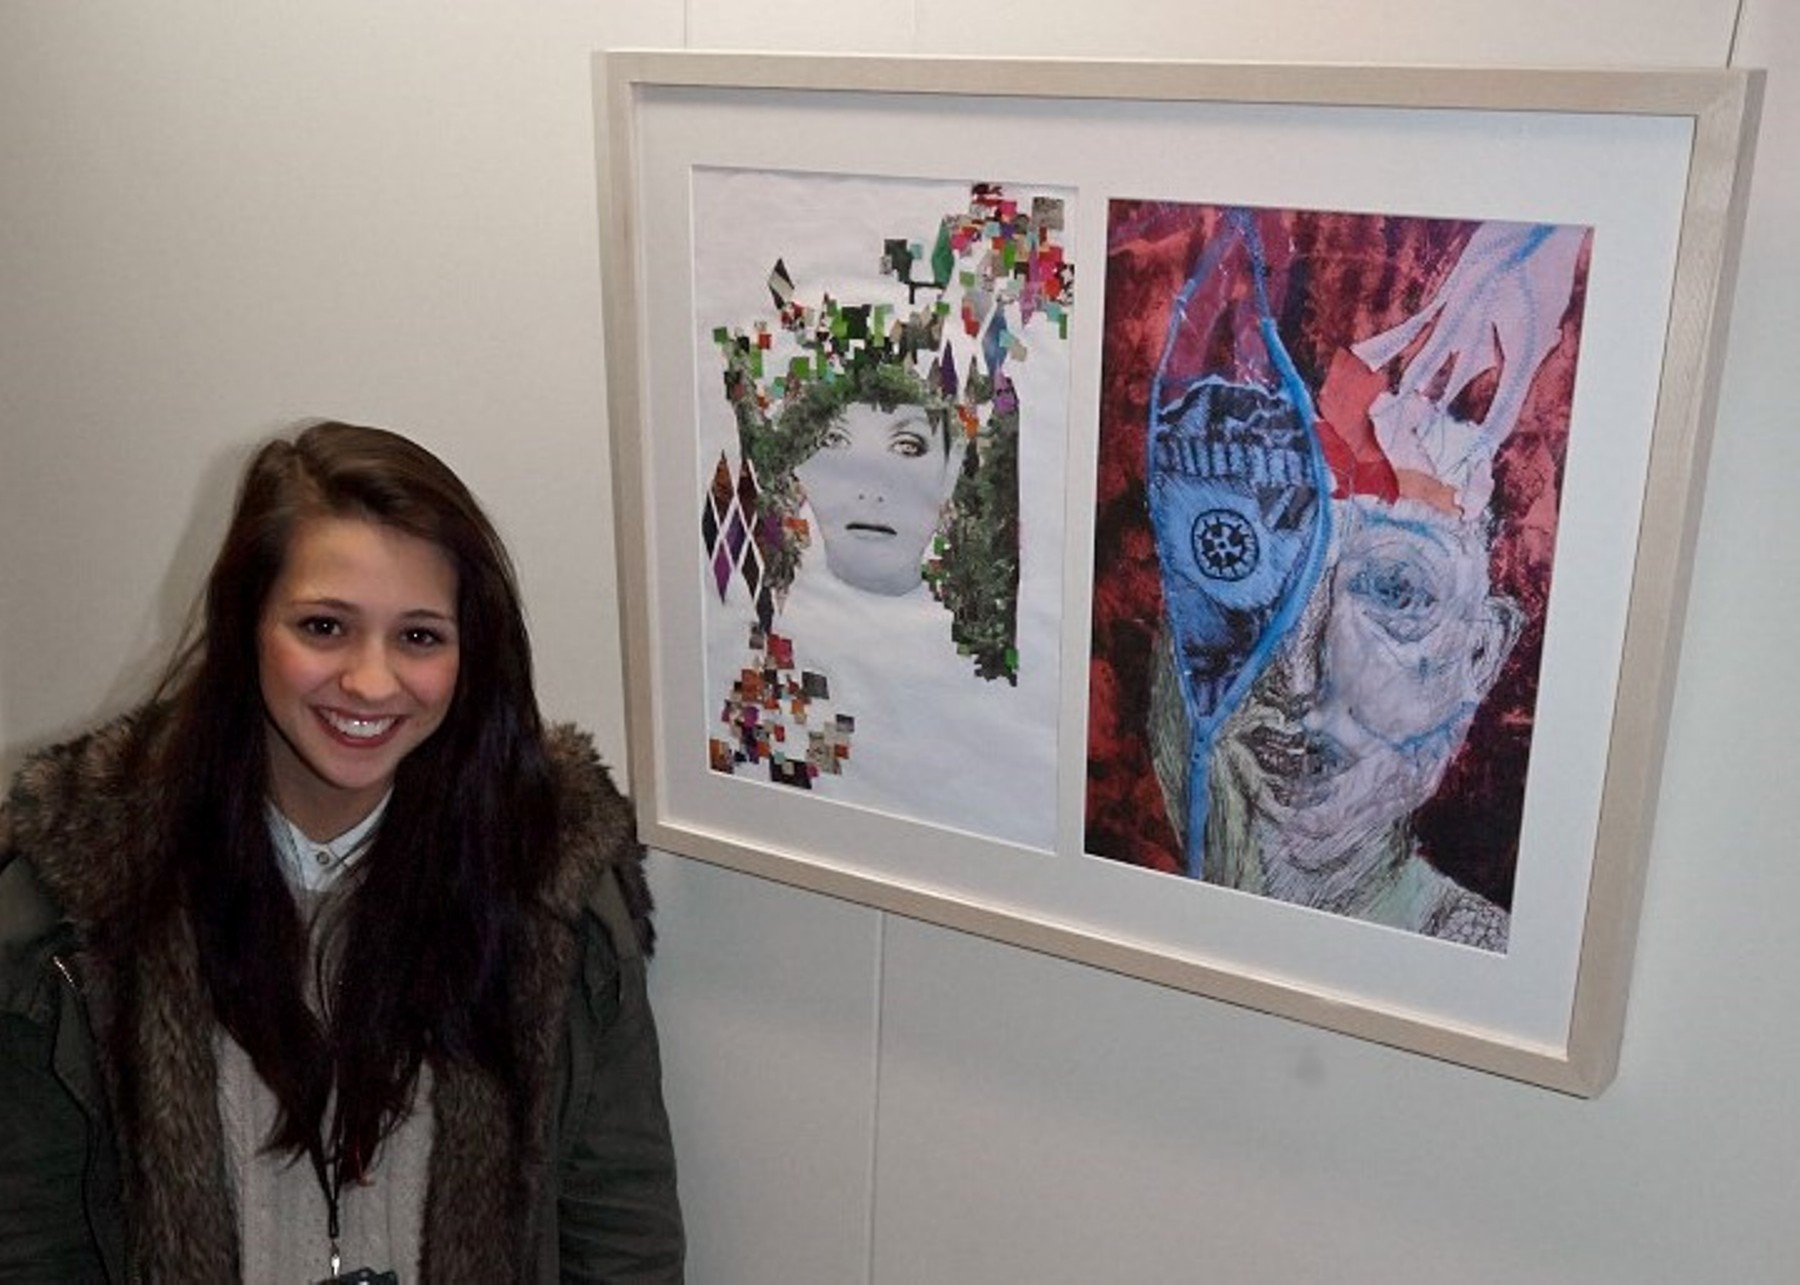 SGS art student Chelsea-Paige Savage, 17, who painted the image in the left hand side of the frame, which is being displayed along with around 40 others at Stroud General Hospital